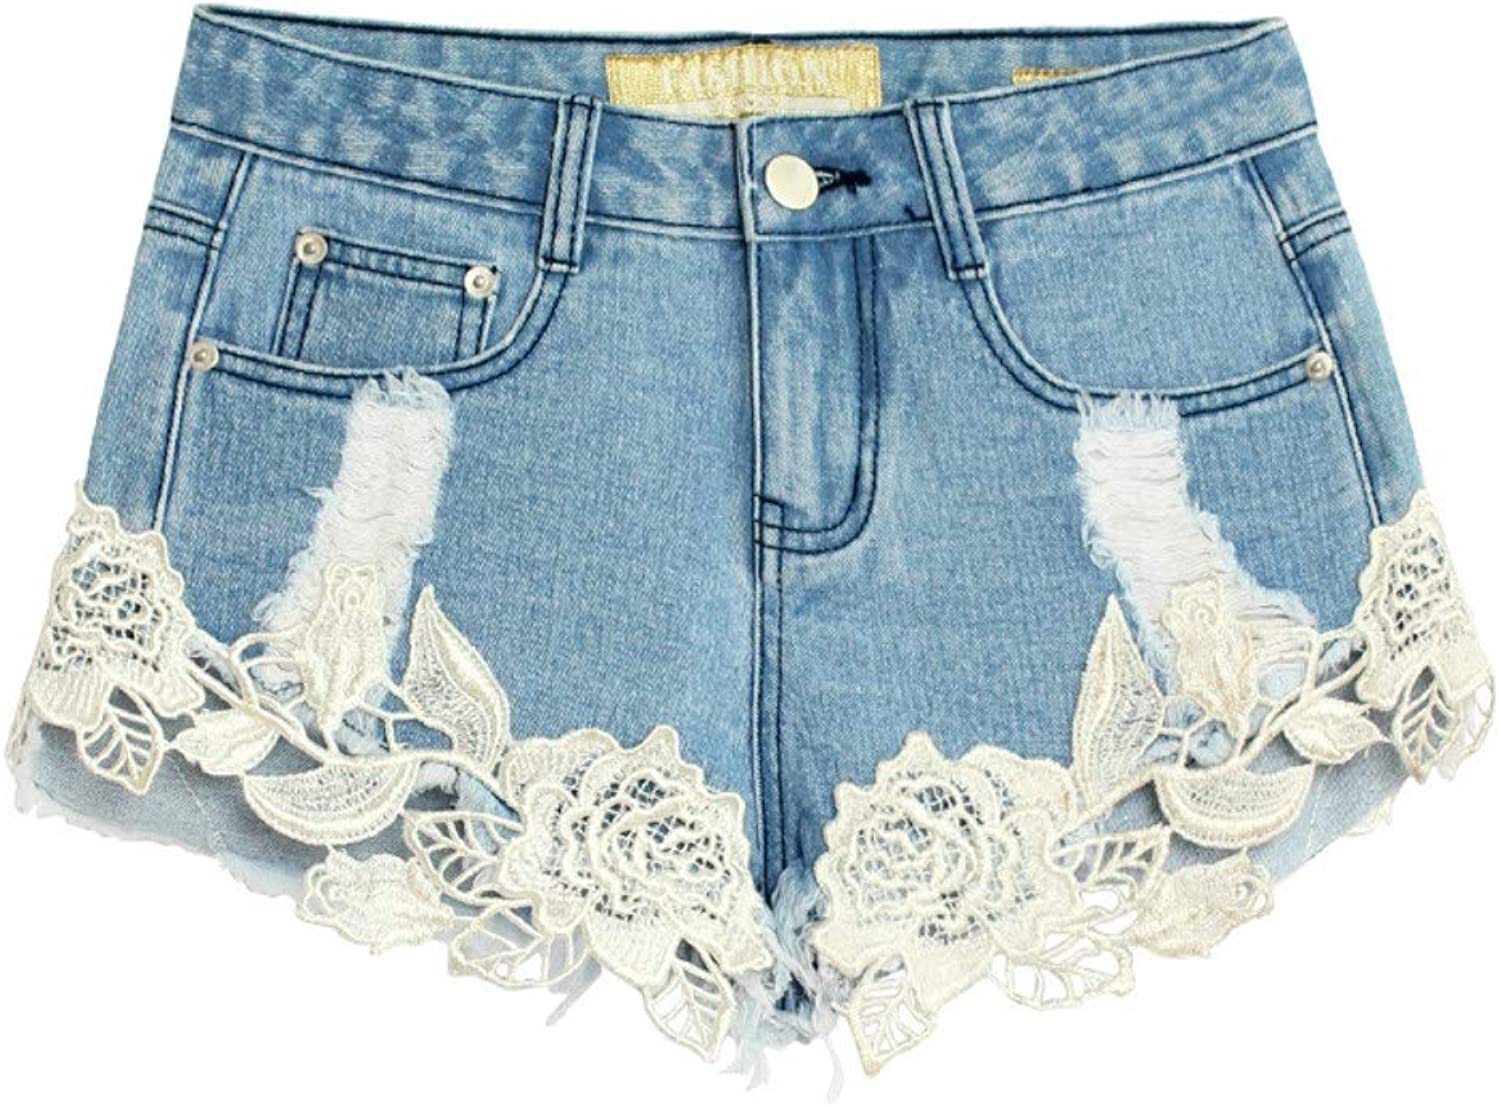 Ruiyue Slim Casual Retro Hot Sexy Spring and Summer Lace Shorts Leisure Retro Irregular Loose Fashion Hole for Women